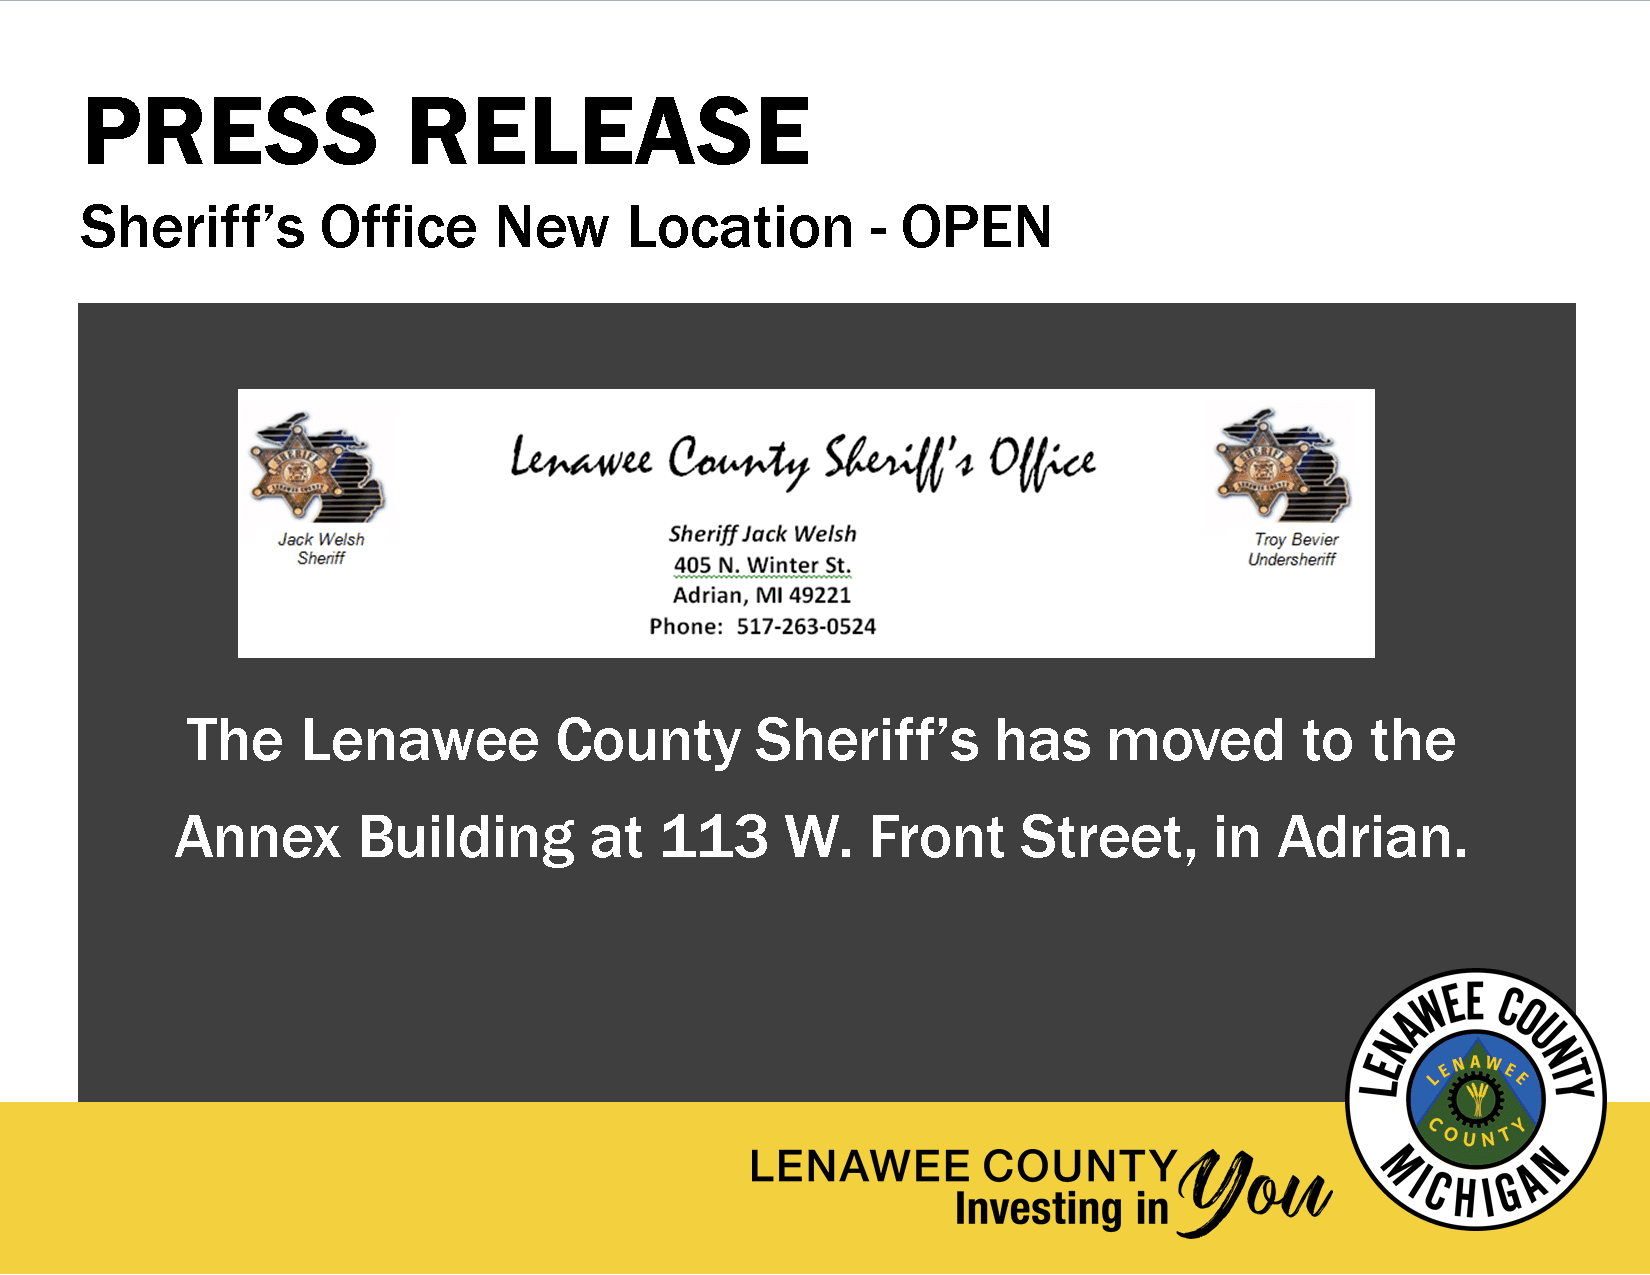 The Sheriff&#39s Office has moved to 113 W. Front Street in Adrian